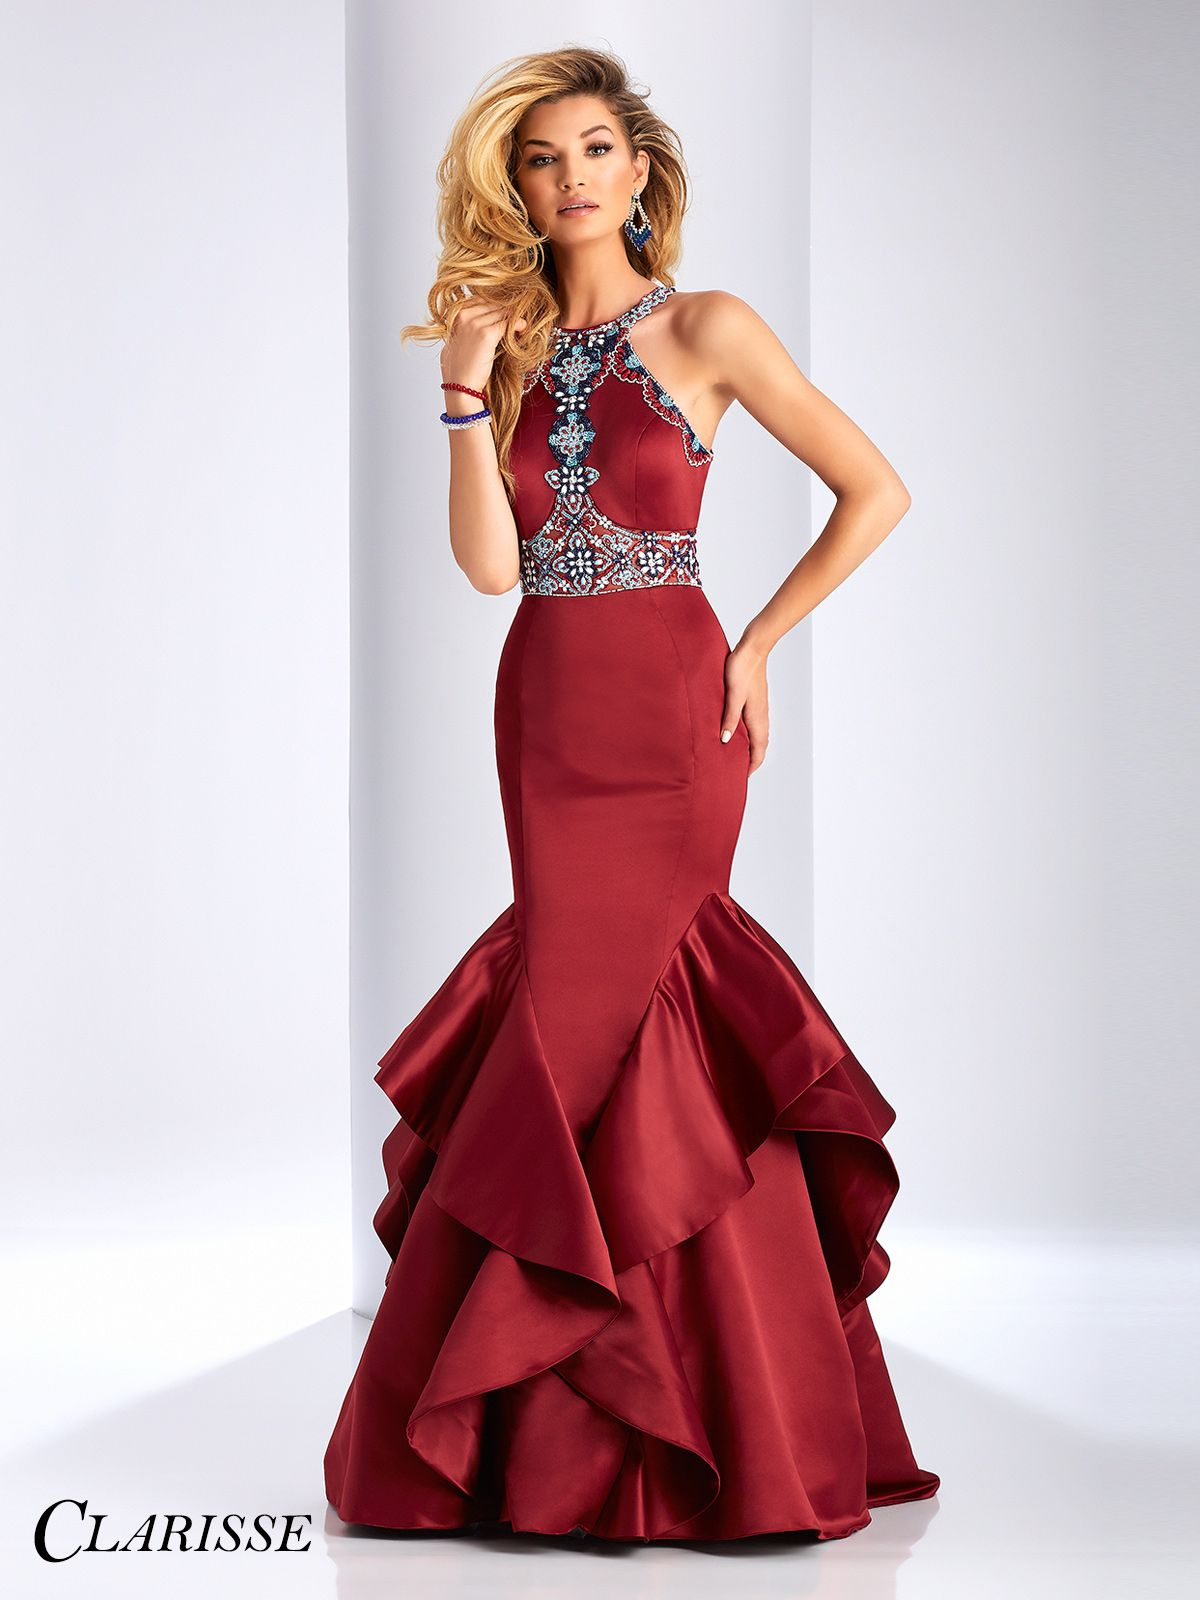 Wedding Prom Dresses Mermaid clarisse gorgeous mermaid prom dress 3058 shops classy and satin 2017 style dramatic with unique bead details and